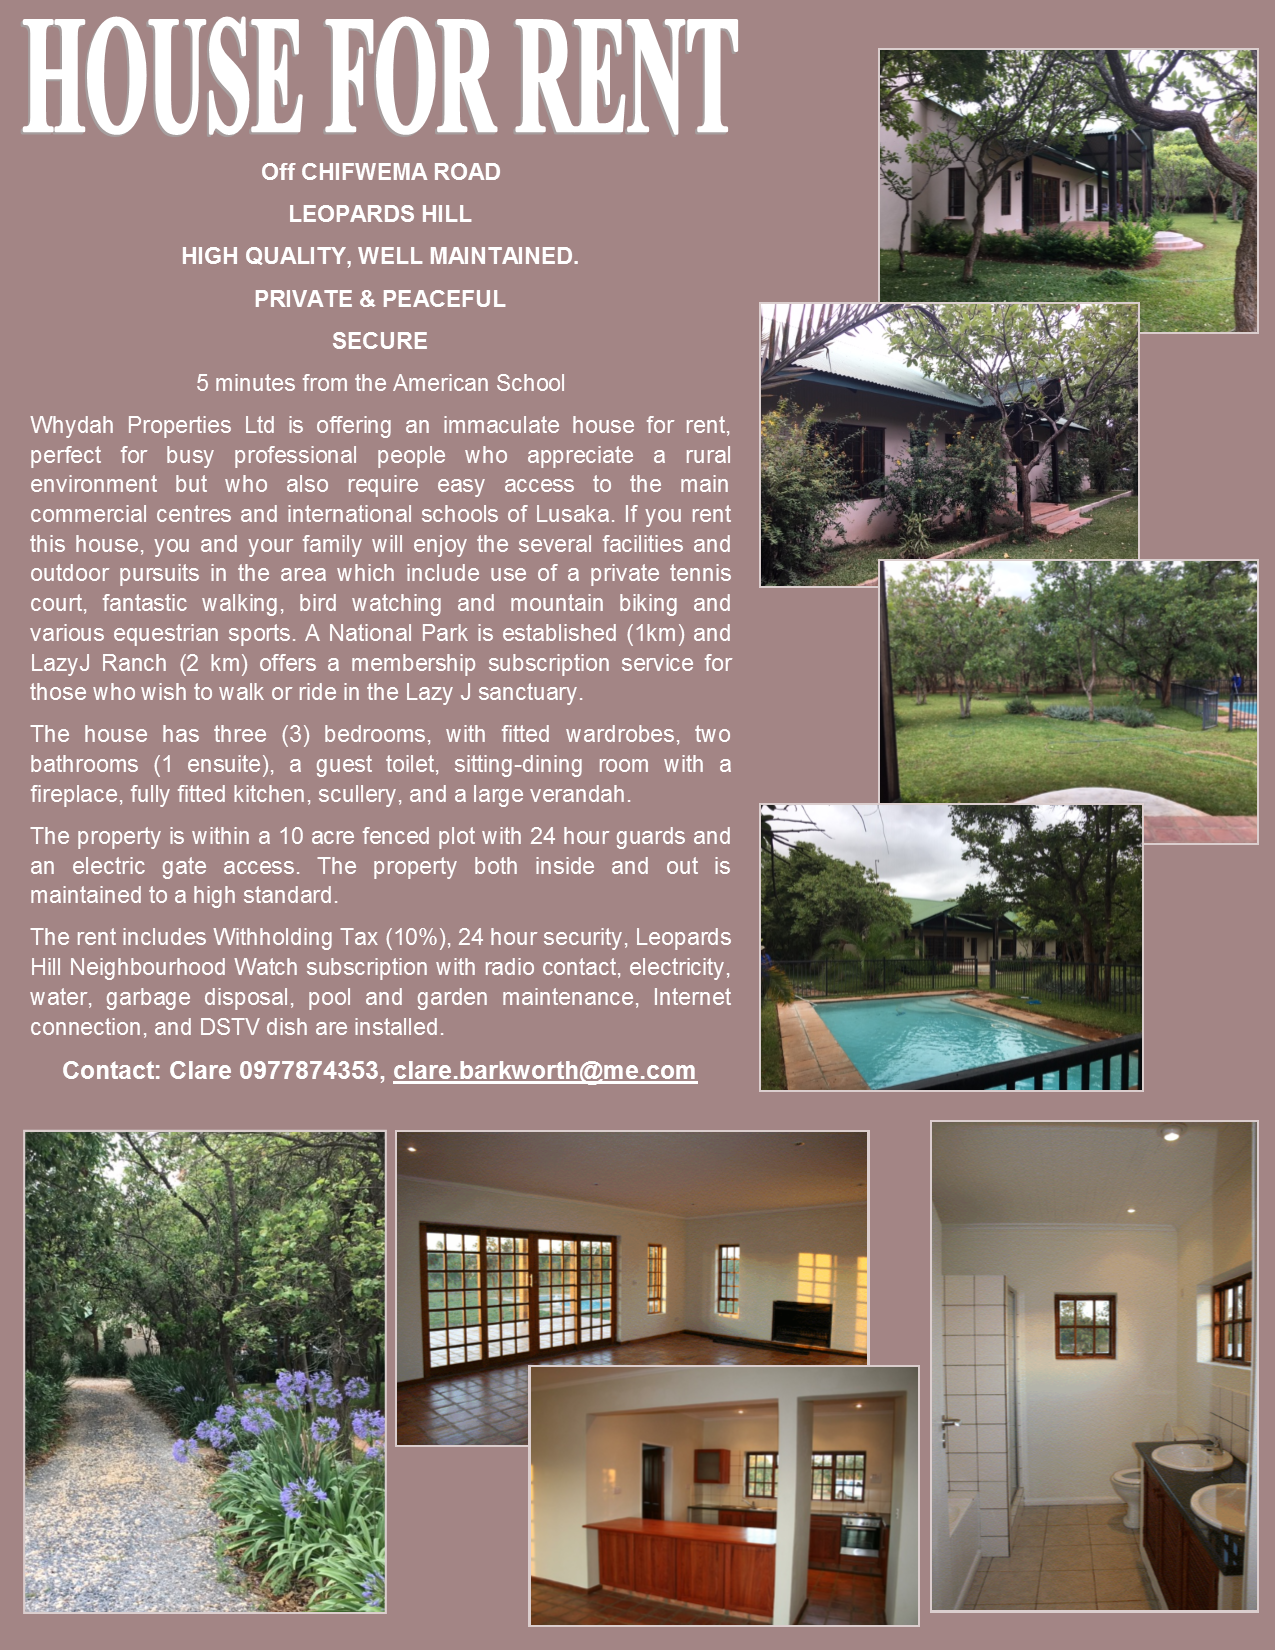 21 02 2019 - house for rent  u00bb ad-dicts ads  zambia